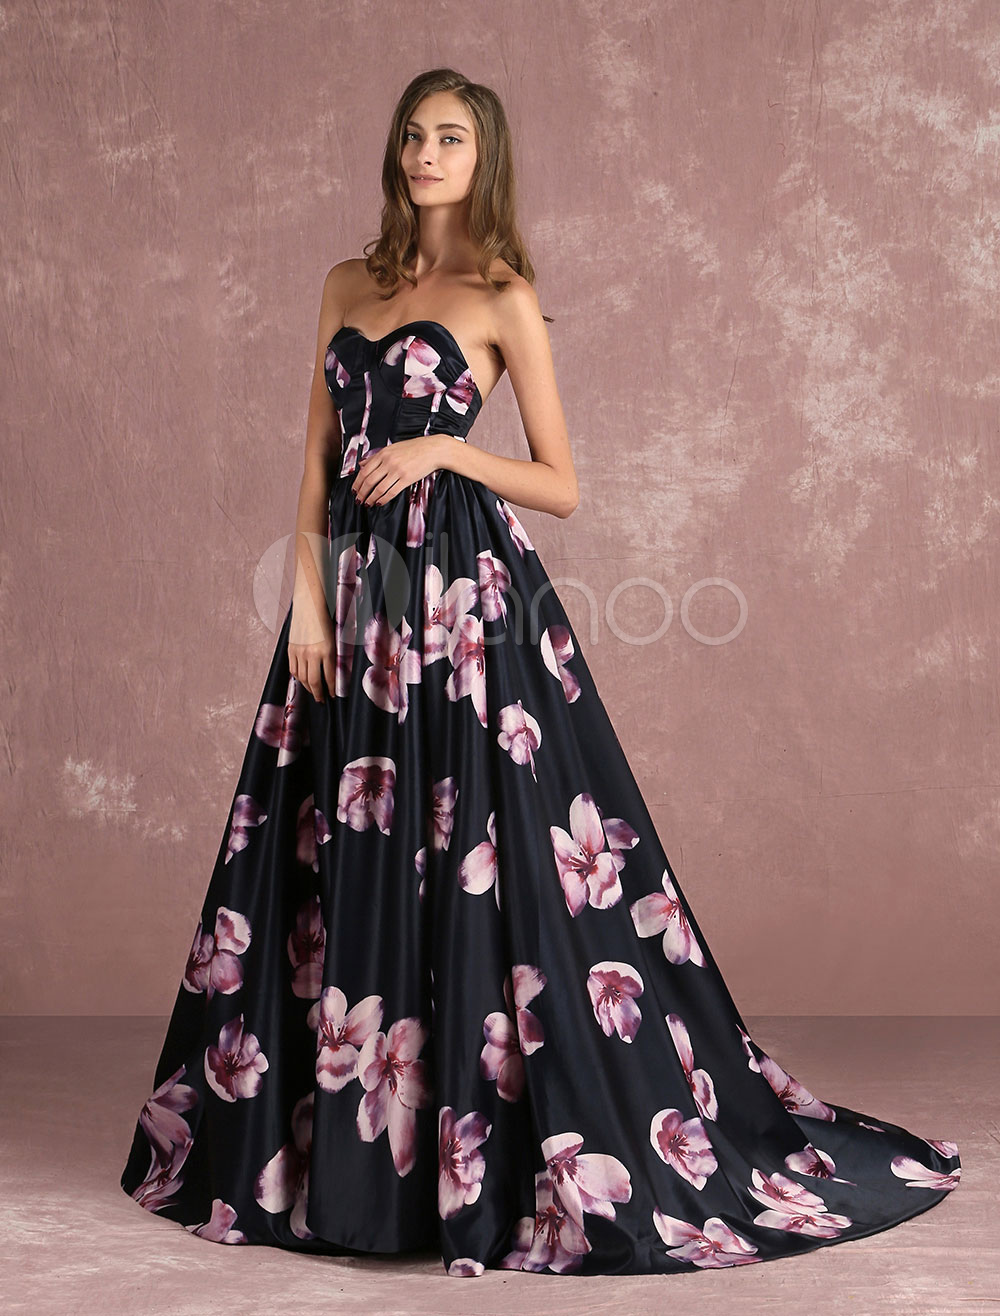 floral pageant dress black sweatheart strapless long prom. Black Bedroom Furniture Sets. Home Design Ideas